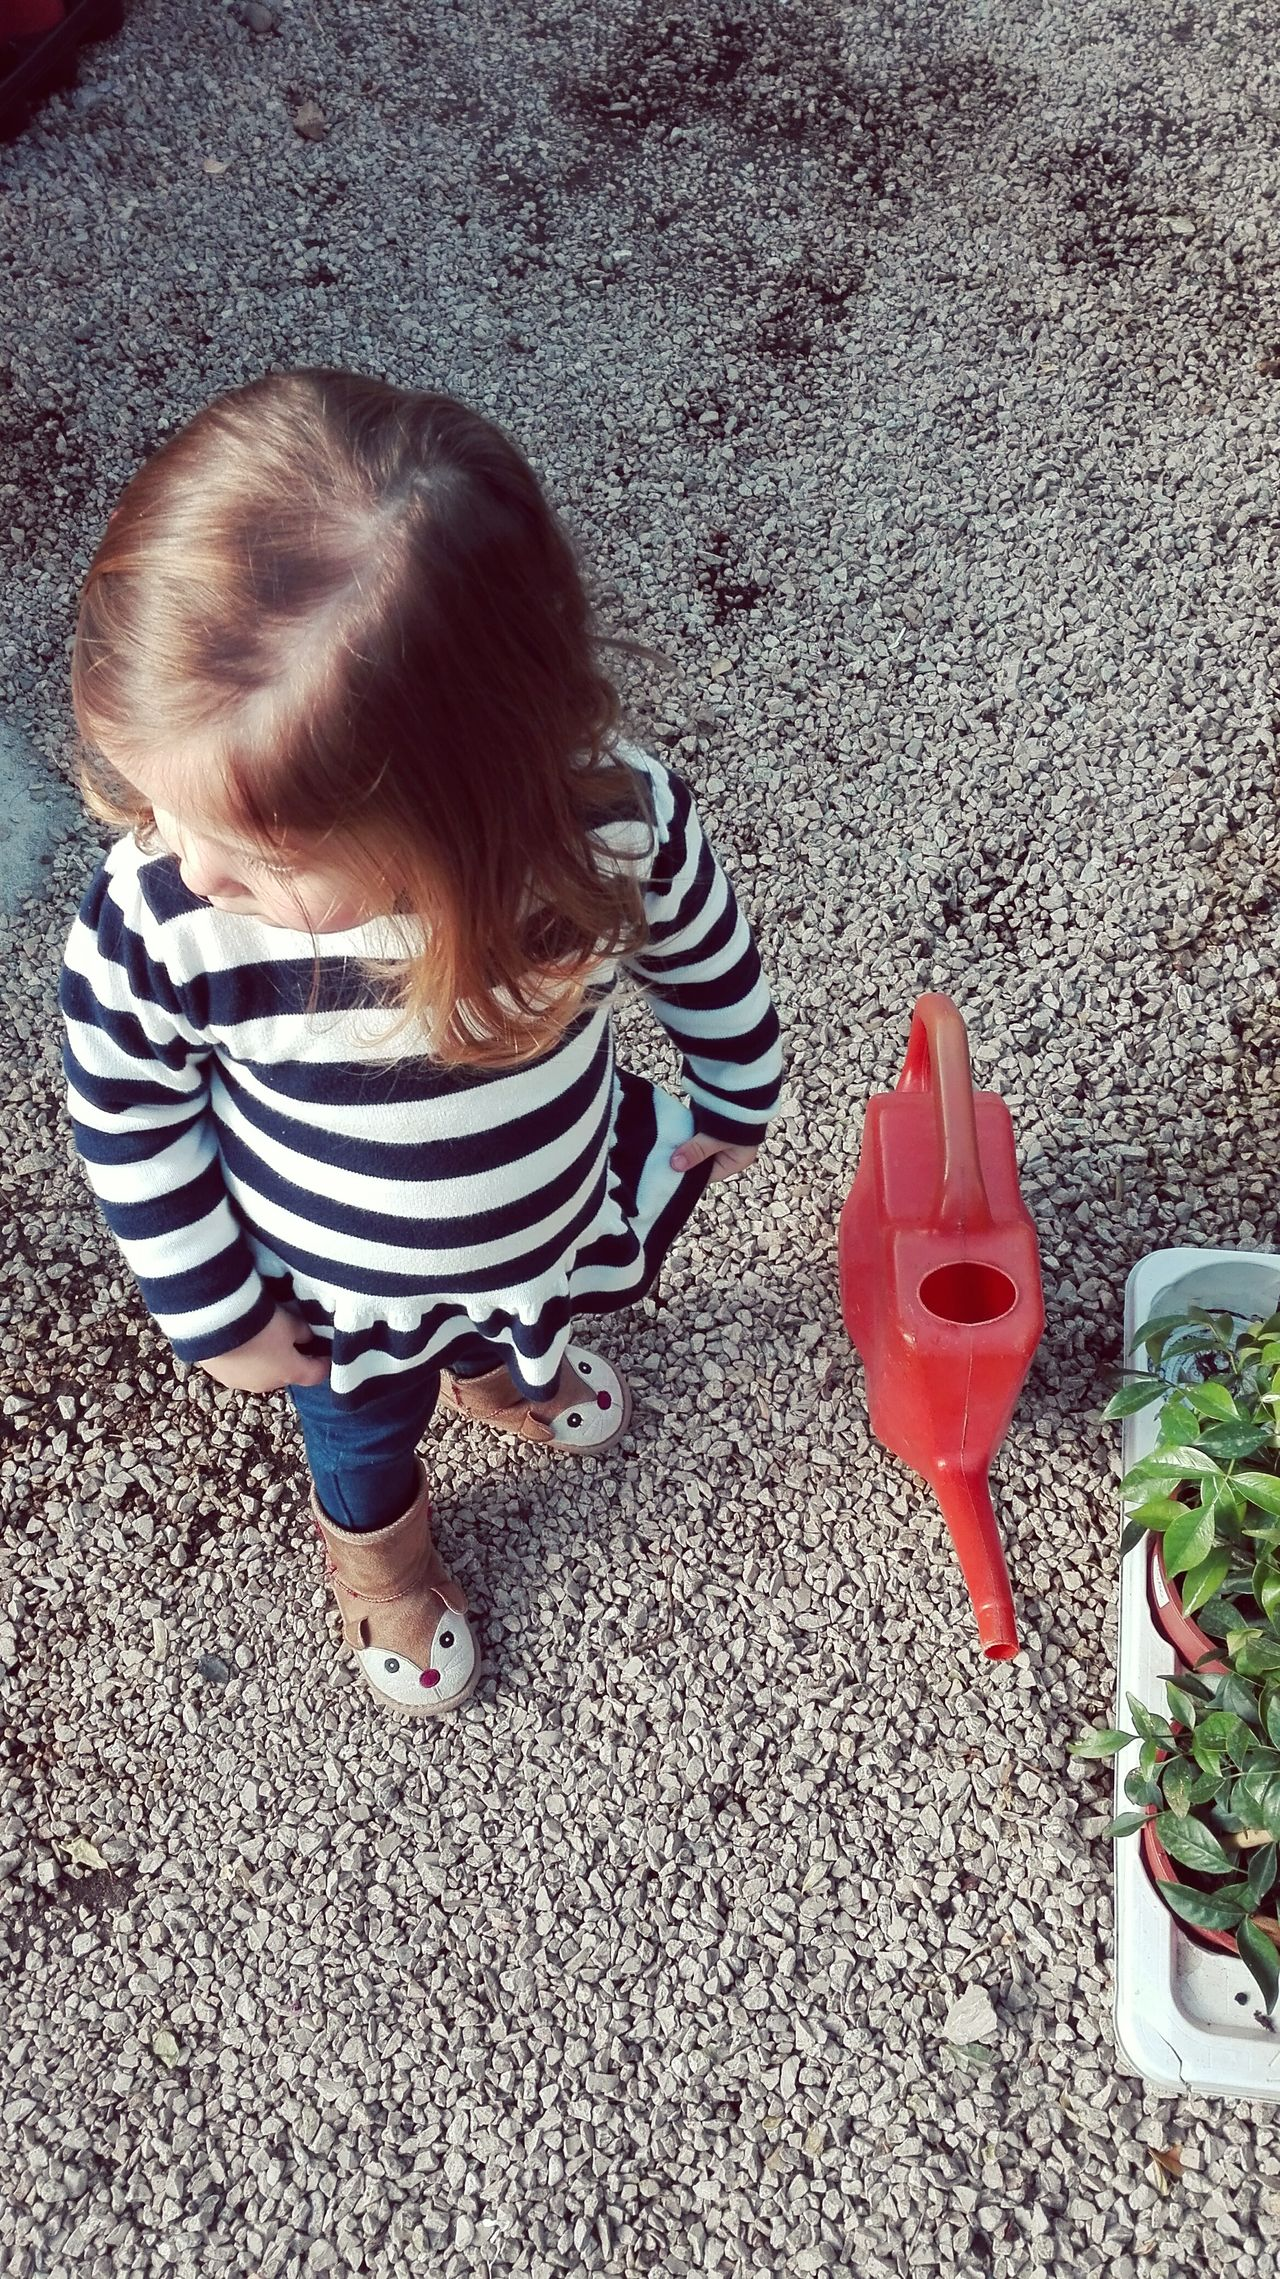 Child High Angle View One Person Girls People Childhood Real People Day Outdoors Human Body Part Plants Gardening Watering Can